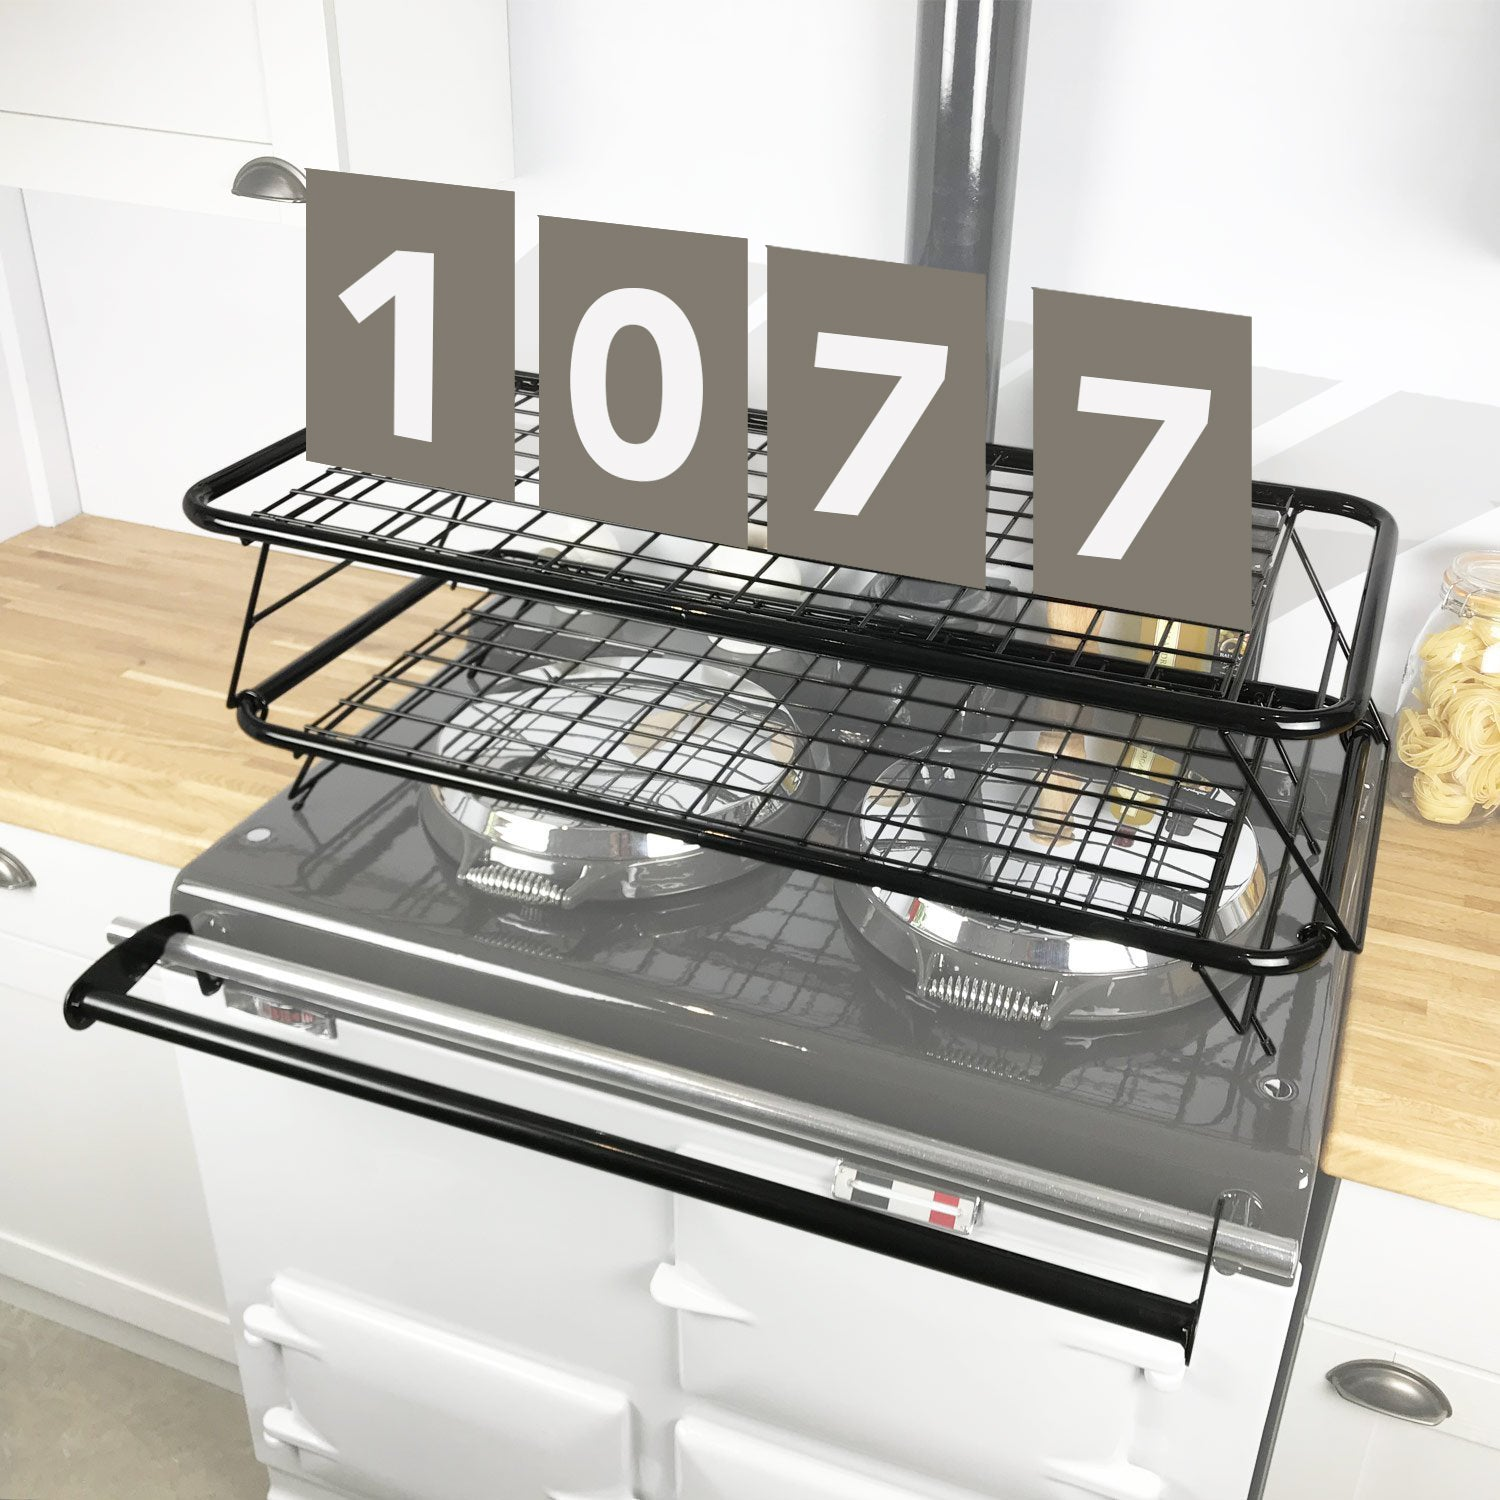 Over 1000 reviews for our drying racks!